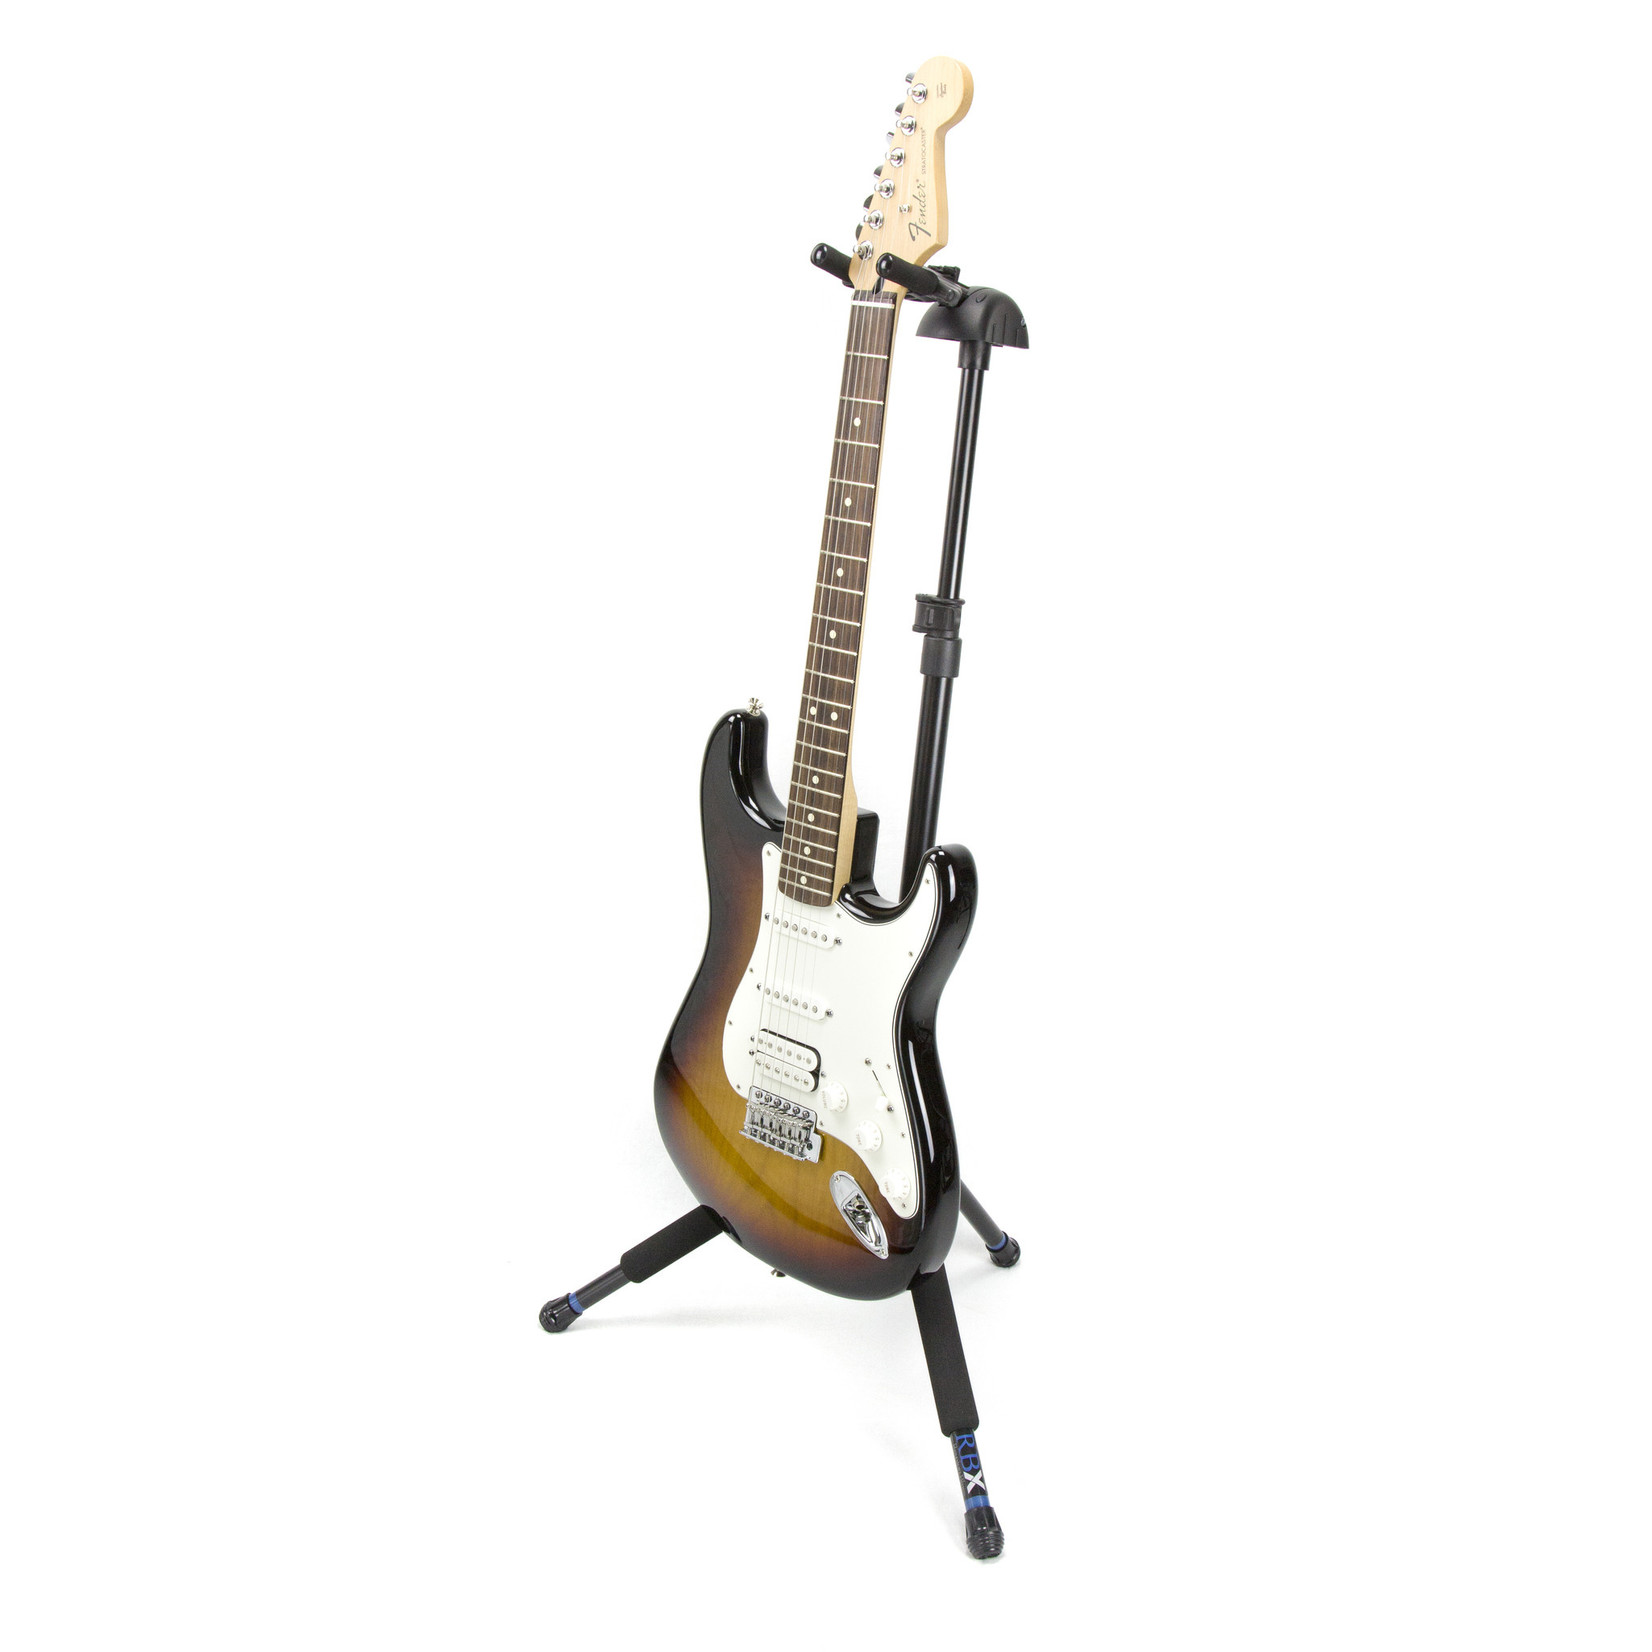 Reunion Blues Reunion Blues RBXS Auto Yoke Hanging Guitar Stand (RBXS-HG3)